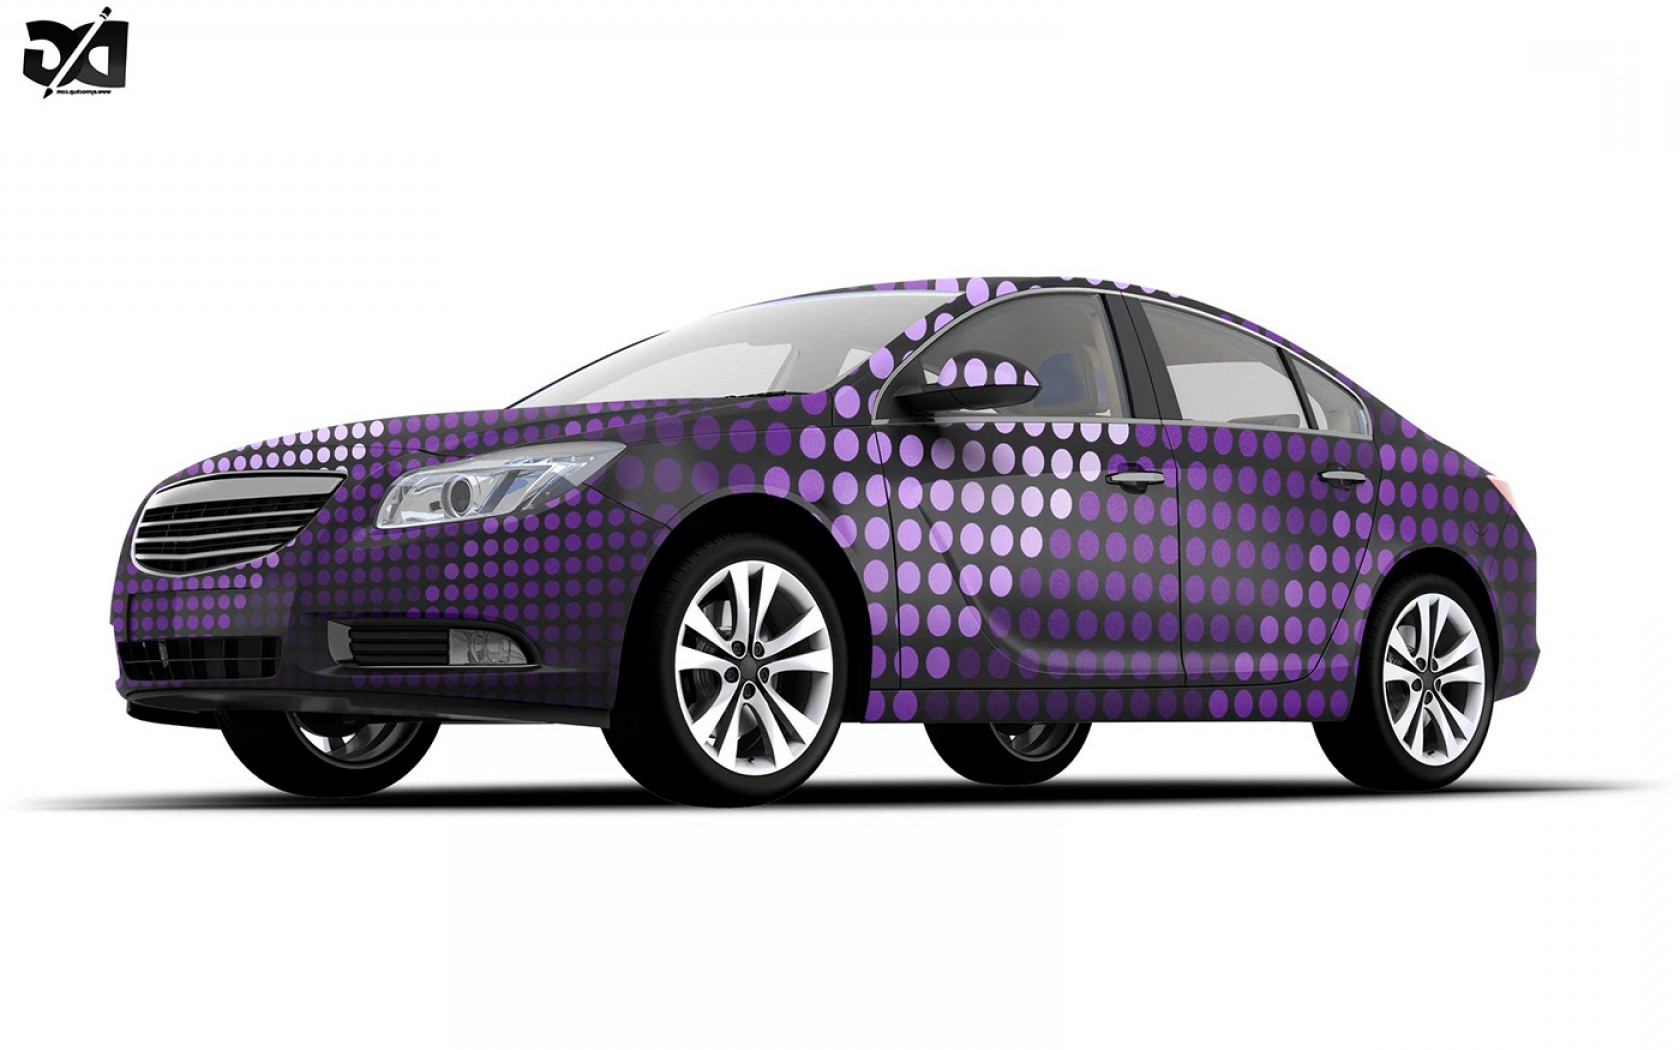 Vector Car Wrapped: Free Psd Realistic High Quality Car Vehicle Mockups For Advertisement